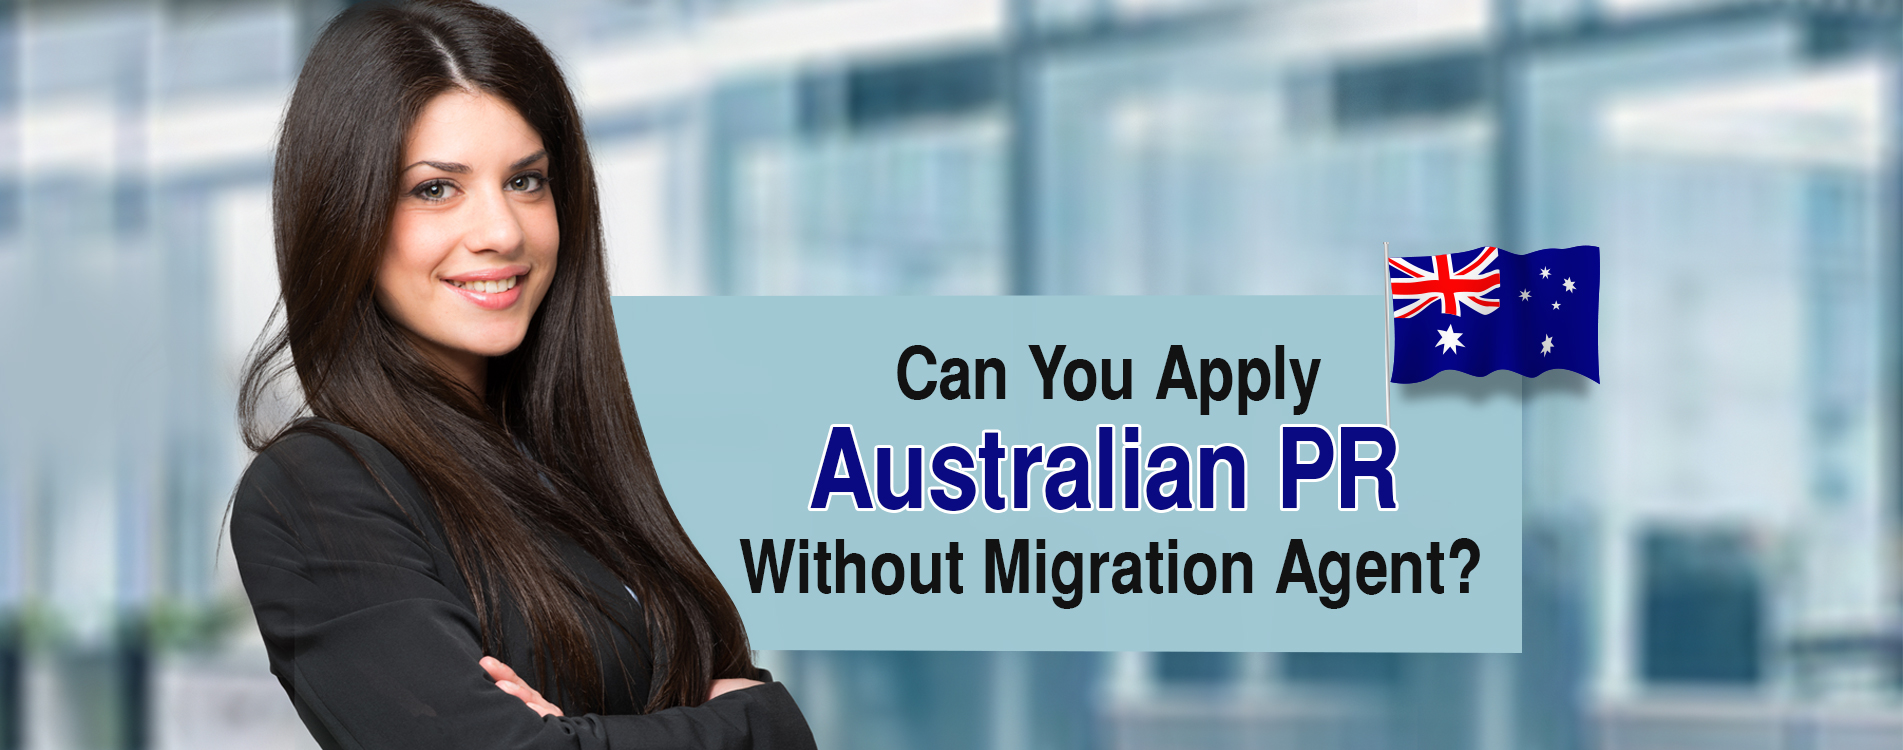 Can You Apply Australian PR Without Migration Agent?